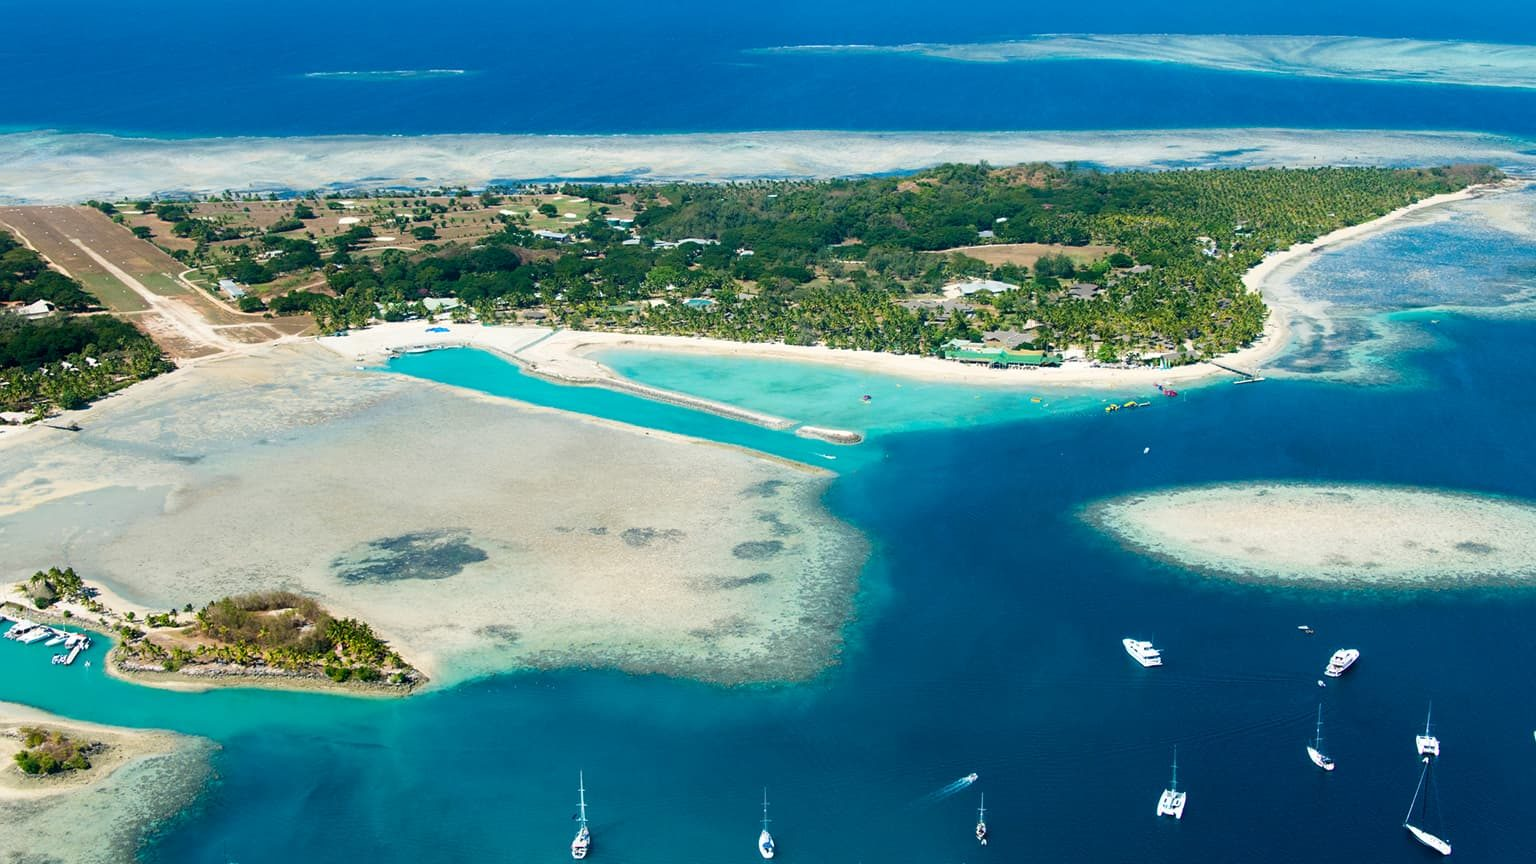 Aerial view of remote tropical island in Fiji